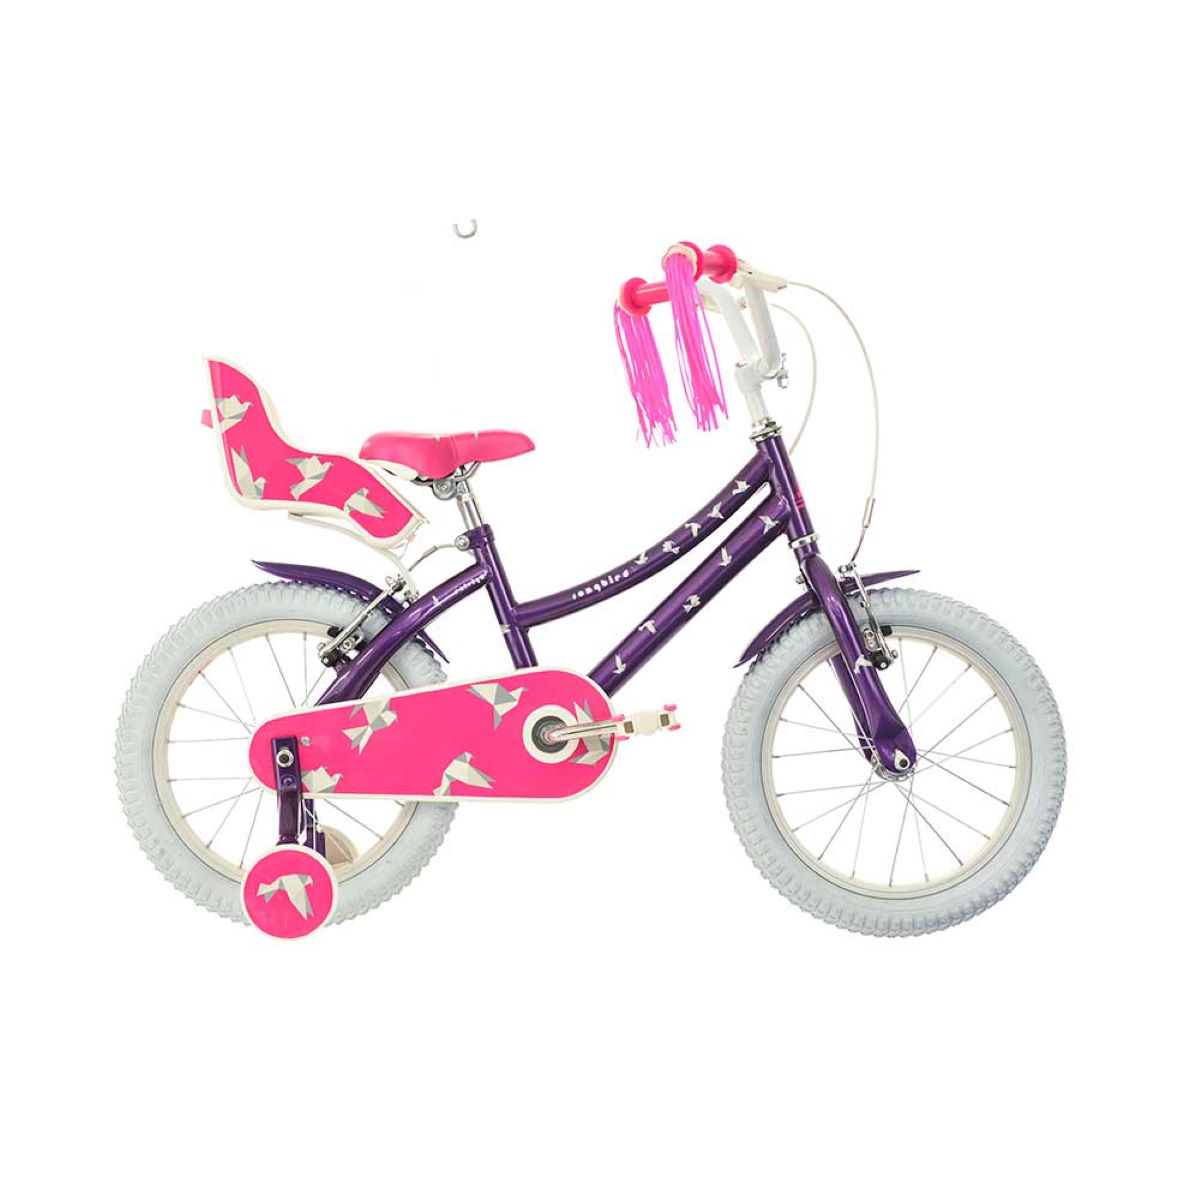 Raleigh Songbird 16 (2017) Kids Bike   Kids Bikes  Under 7